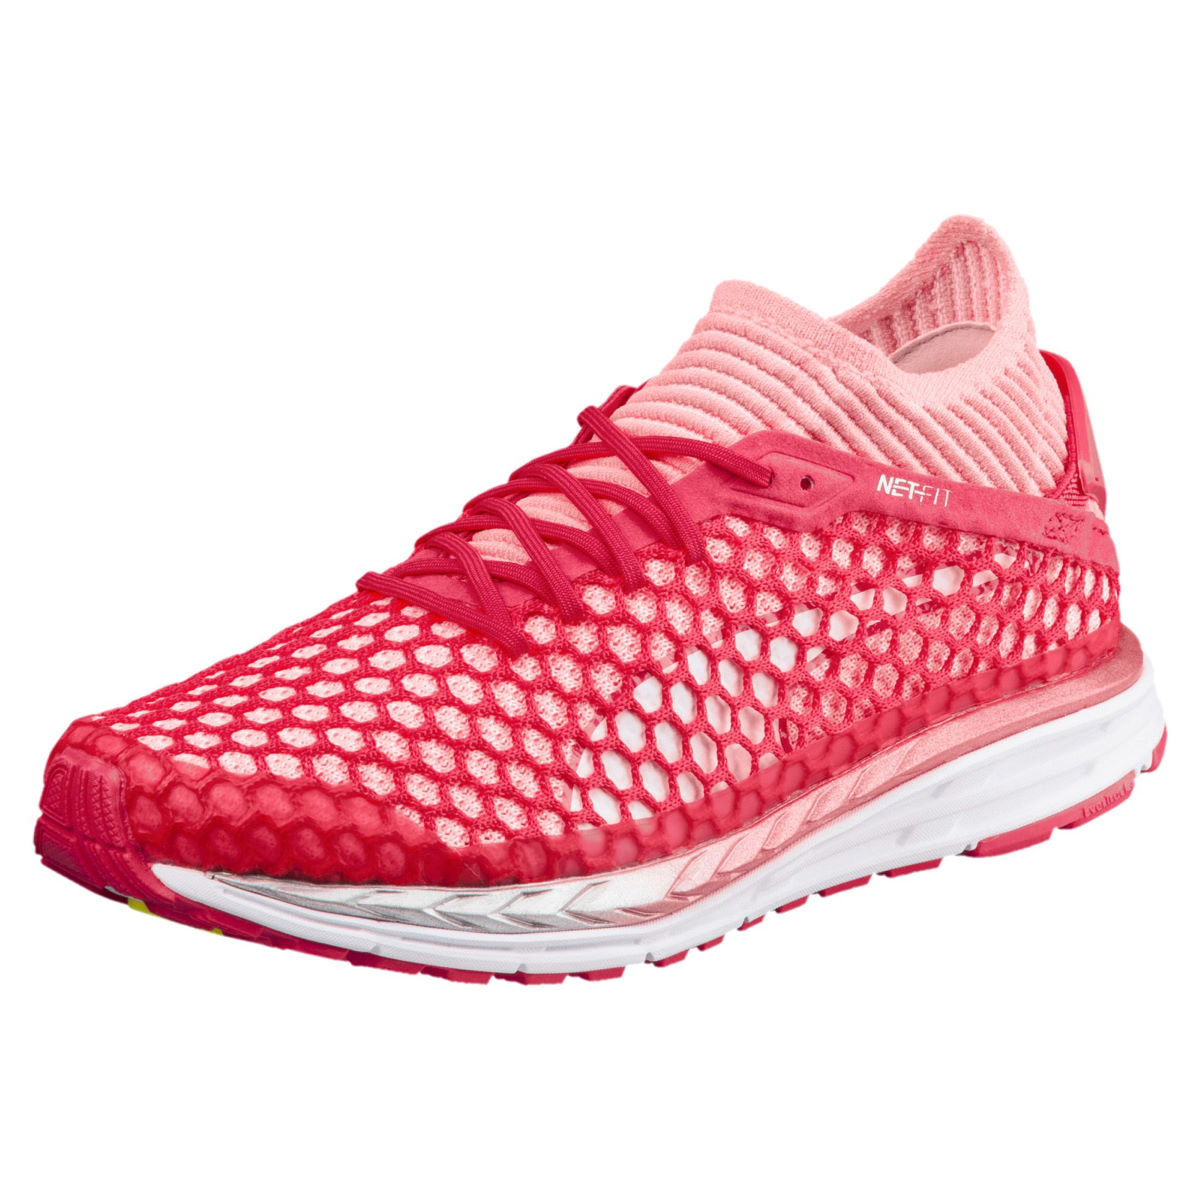 Chaussures Femme Puma Speed Ignite Netfit 2 - UK 7 pink-peach-white